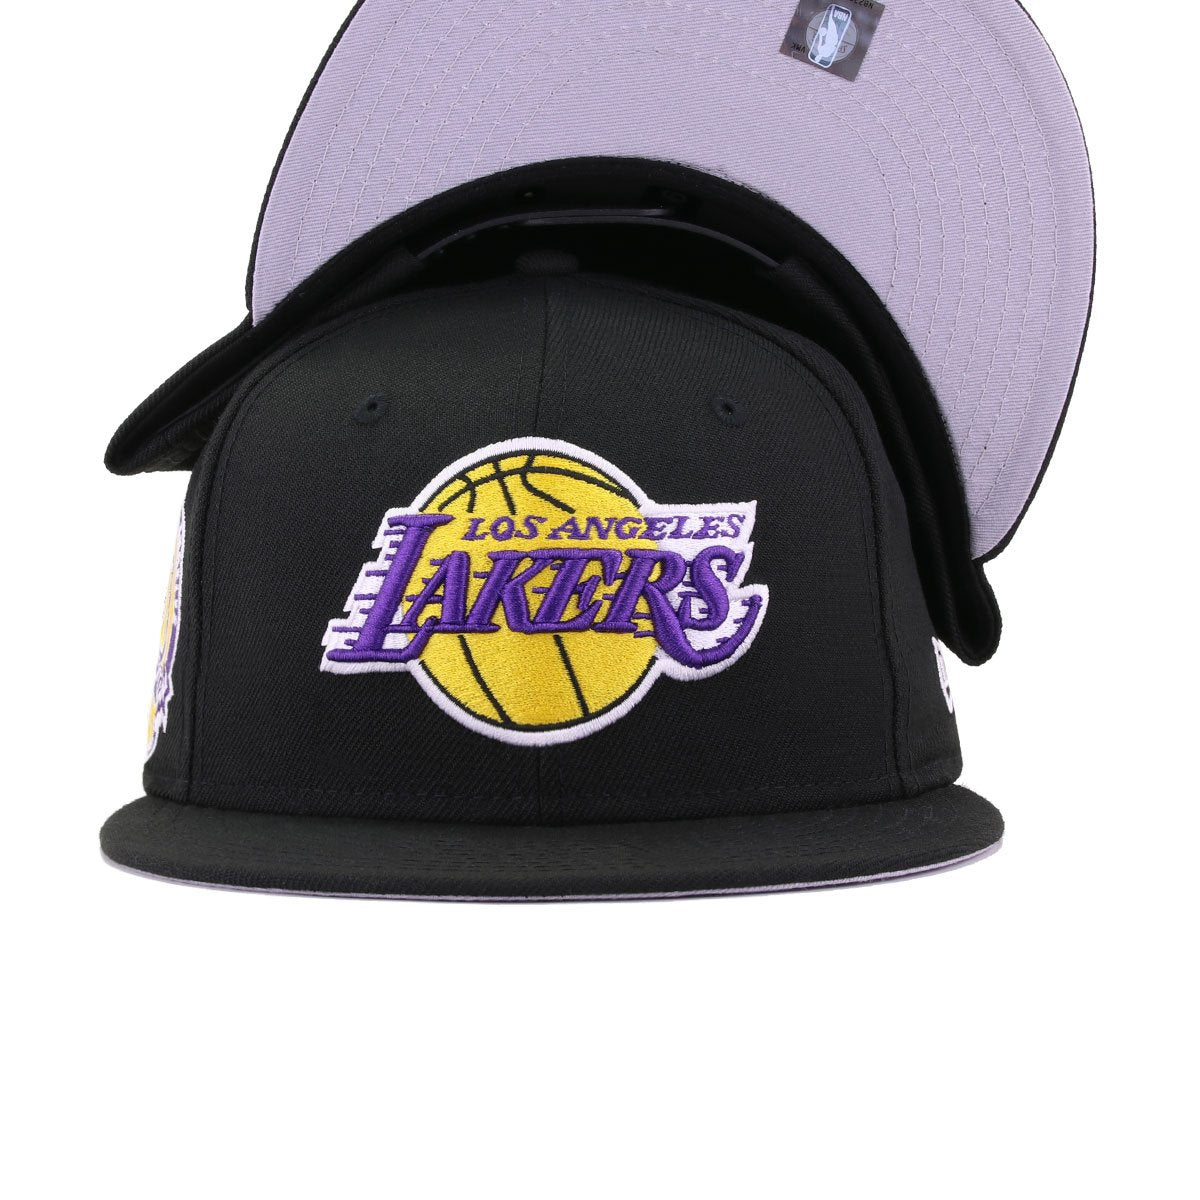 Los Angeles Lakers Black 60th Anniversary New Era 9Fifty Snapback